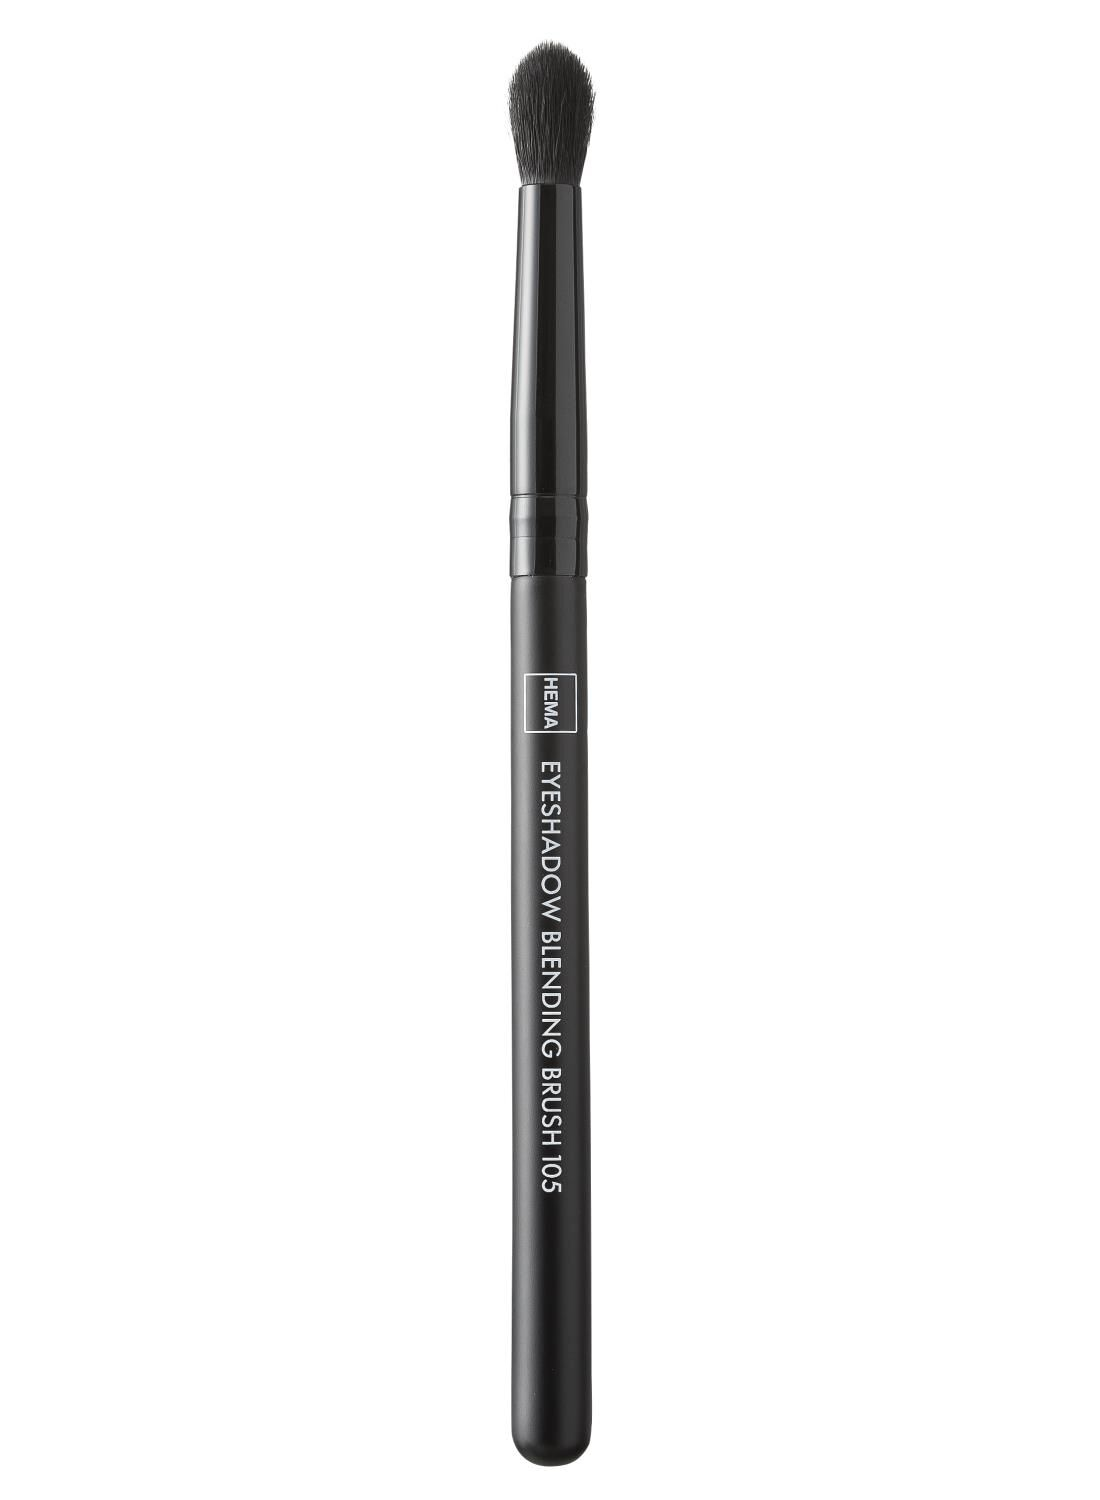 HEMA Eyeshadow Blending Brush 105